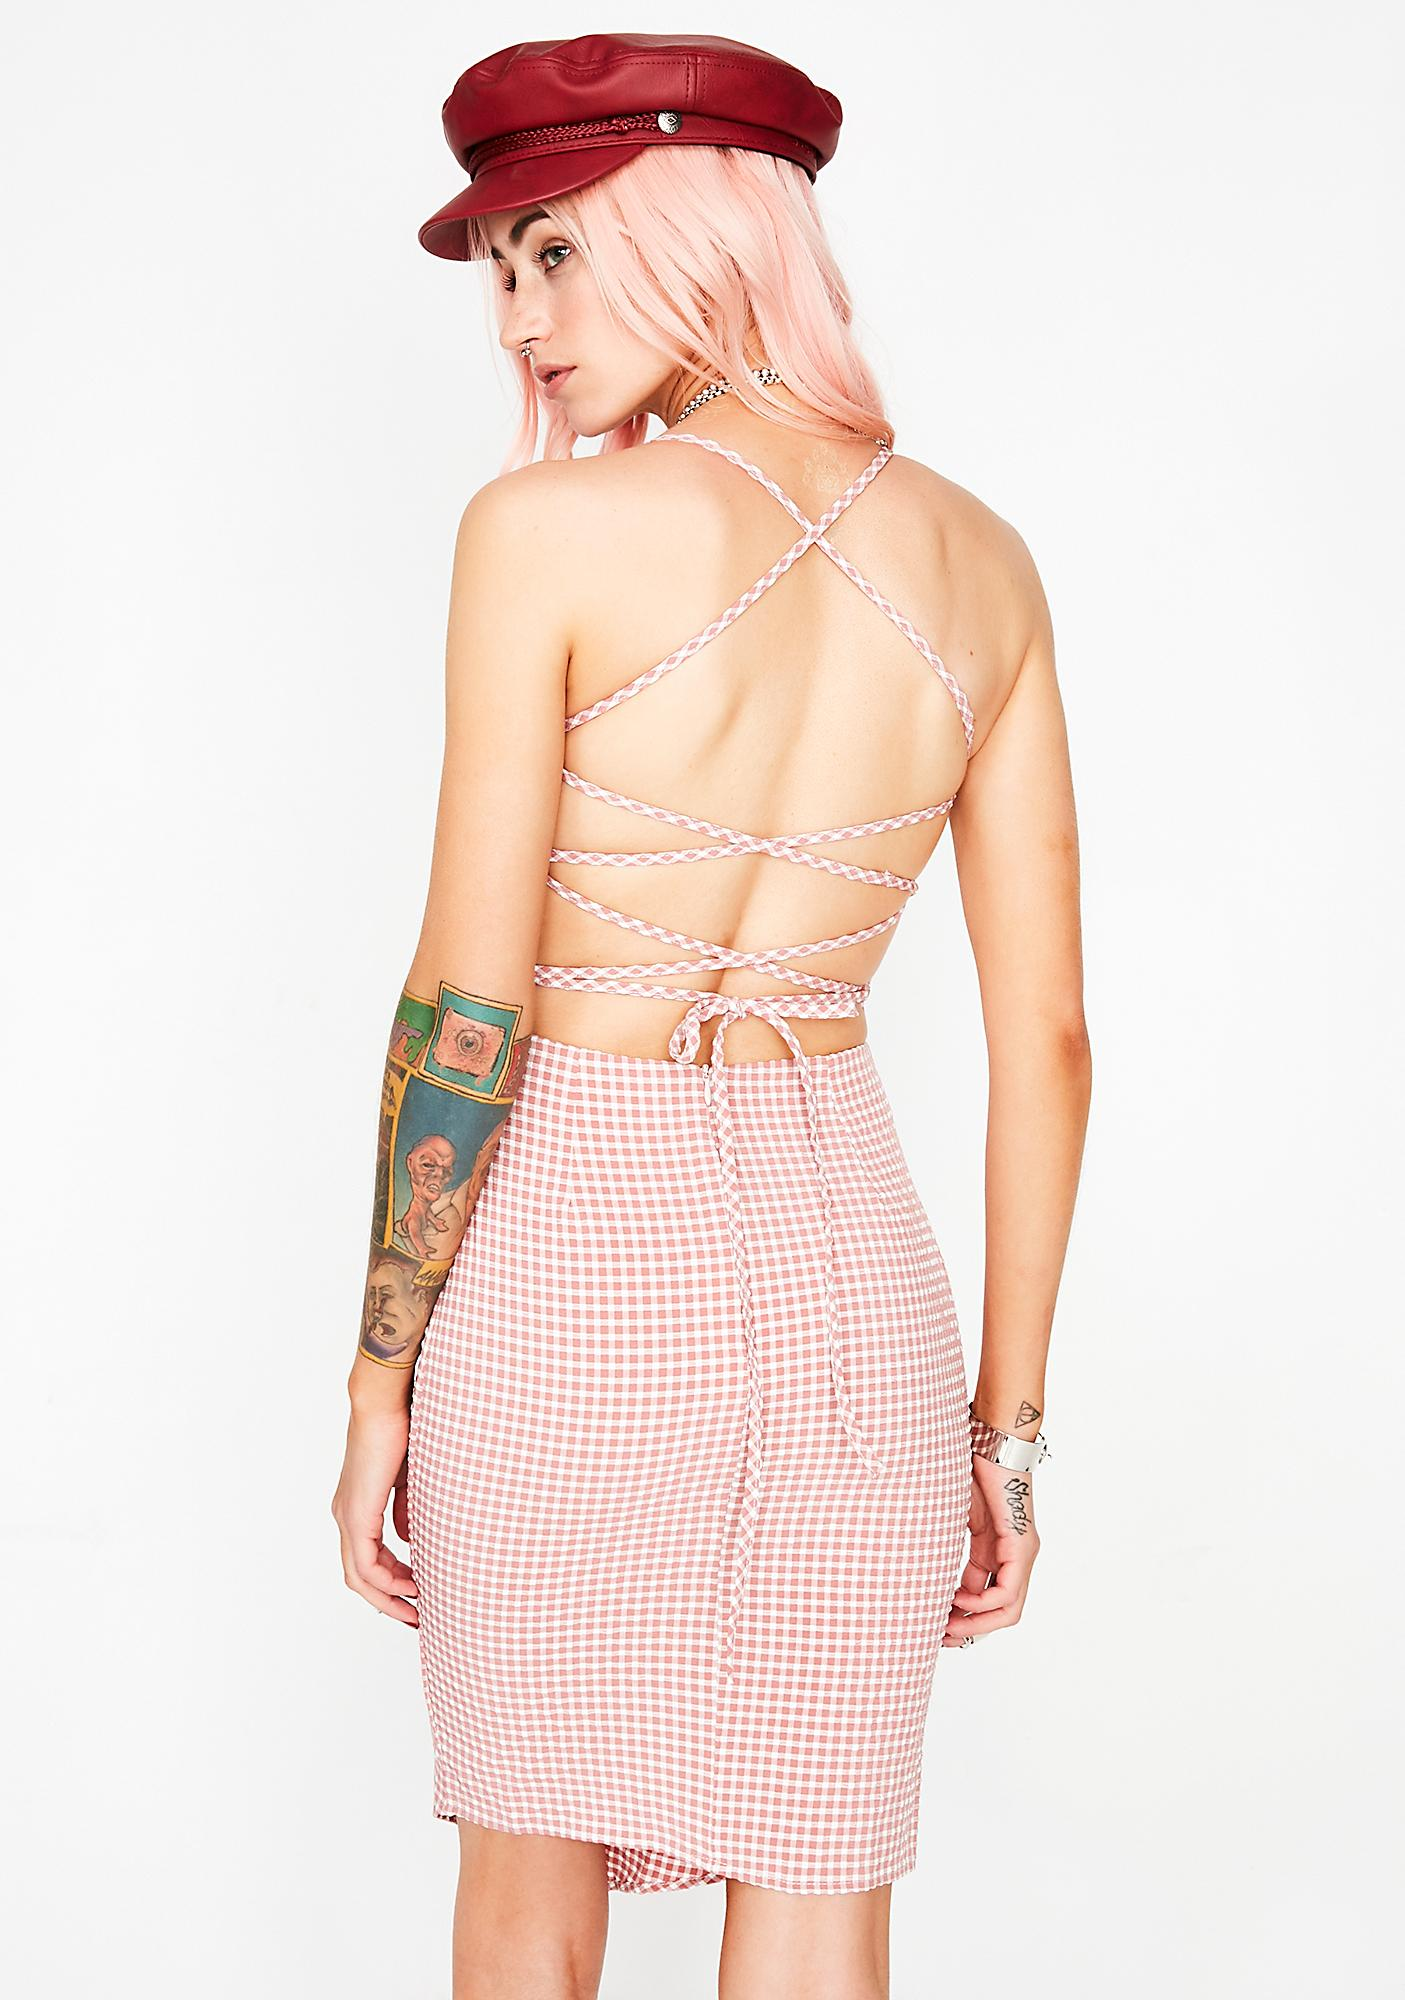 Lover's Lane Gingham Dress